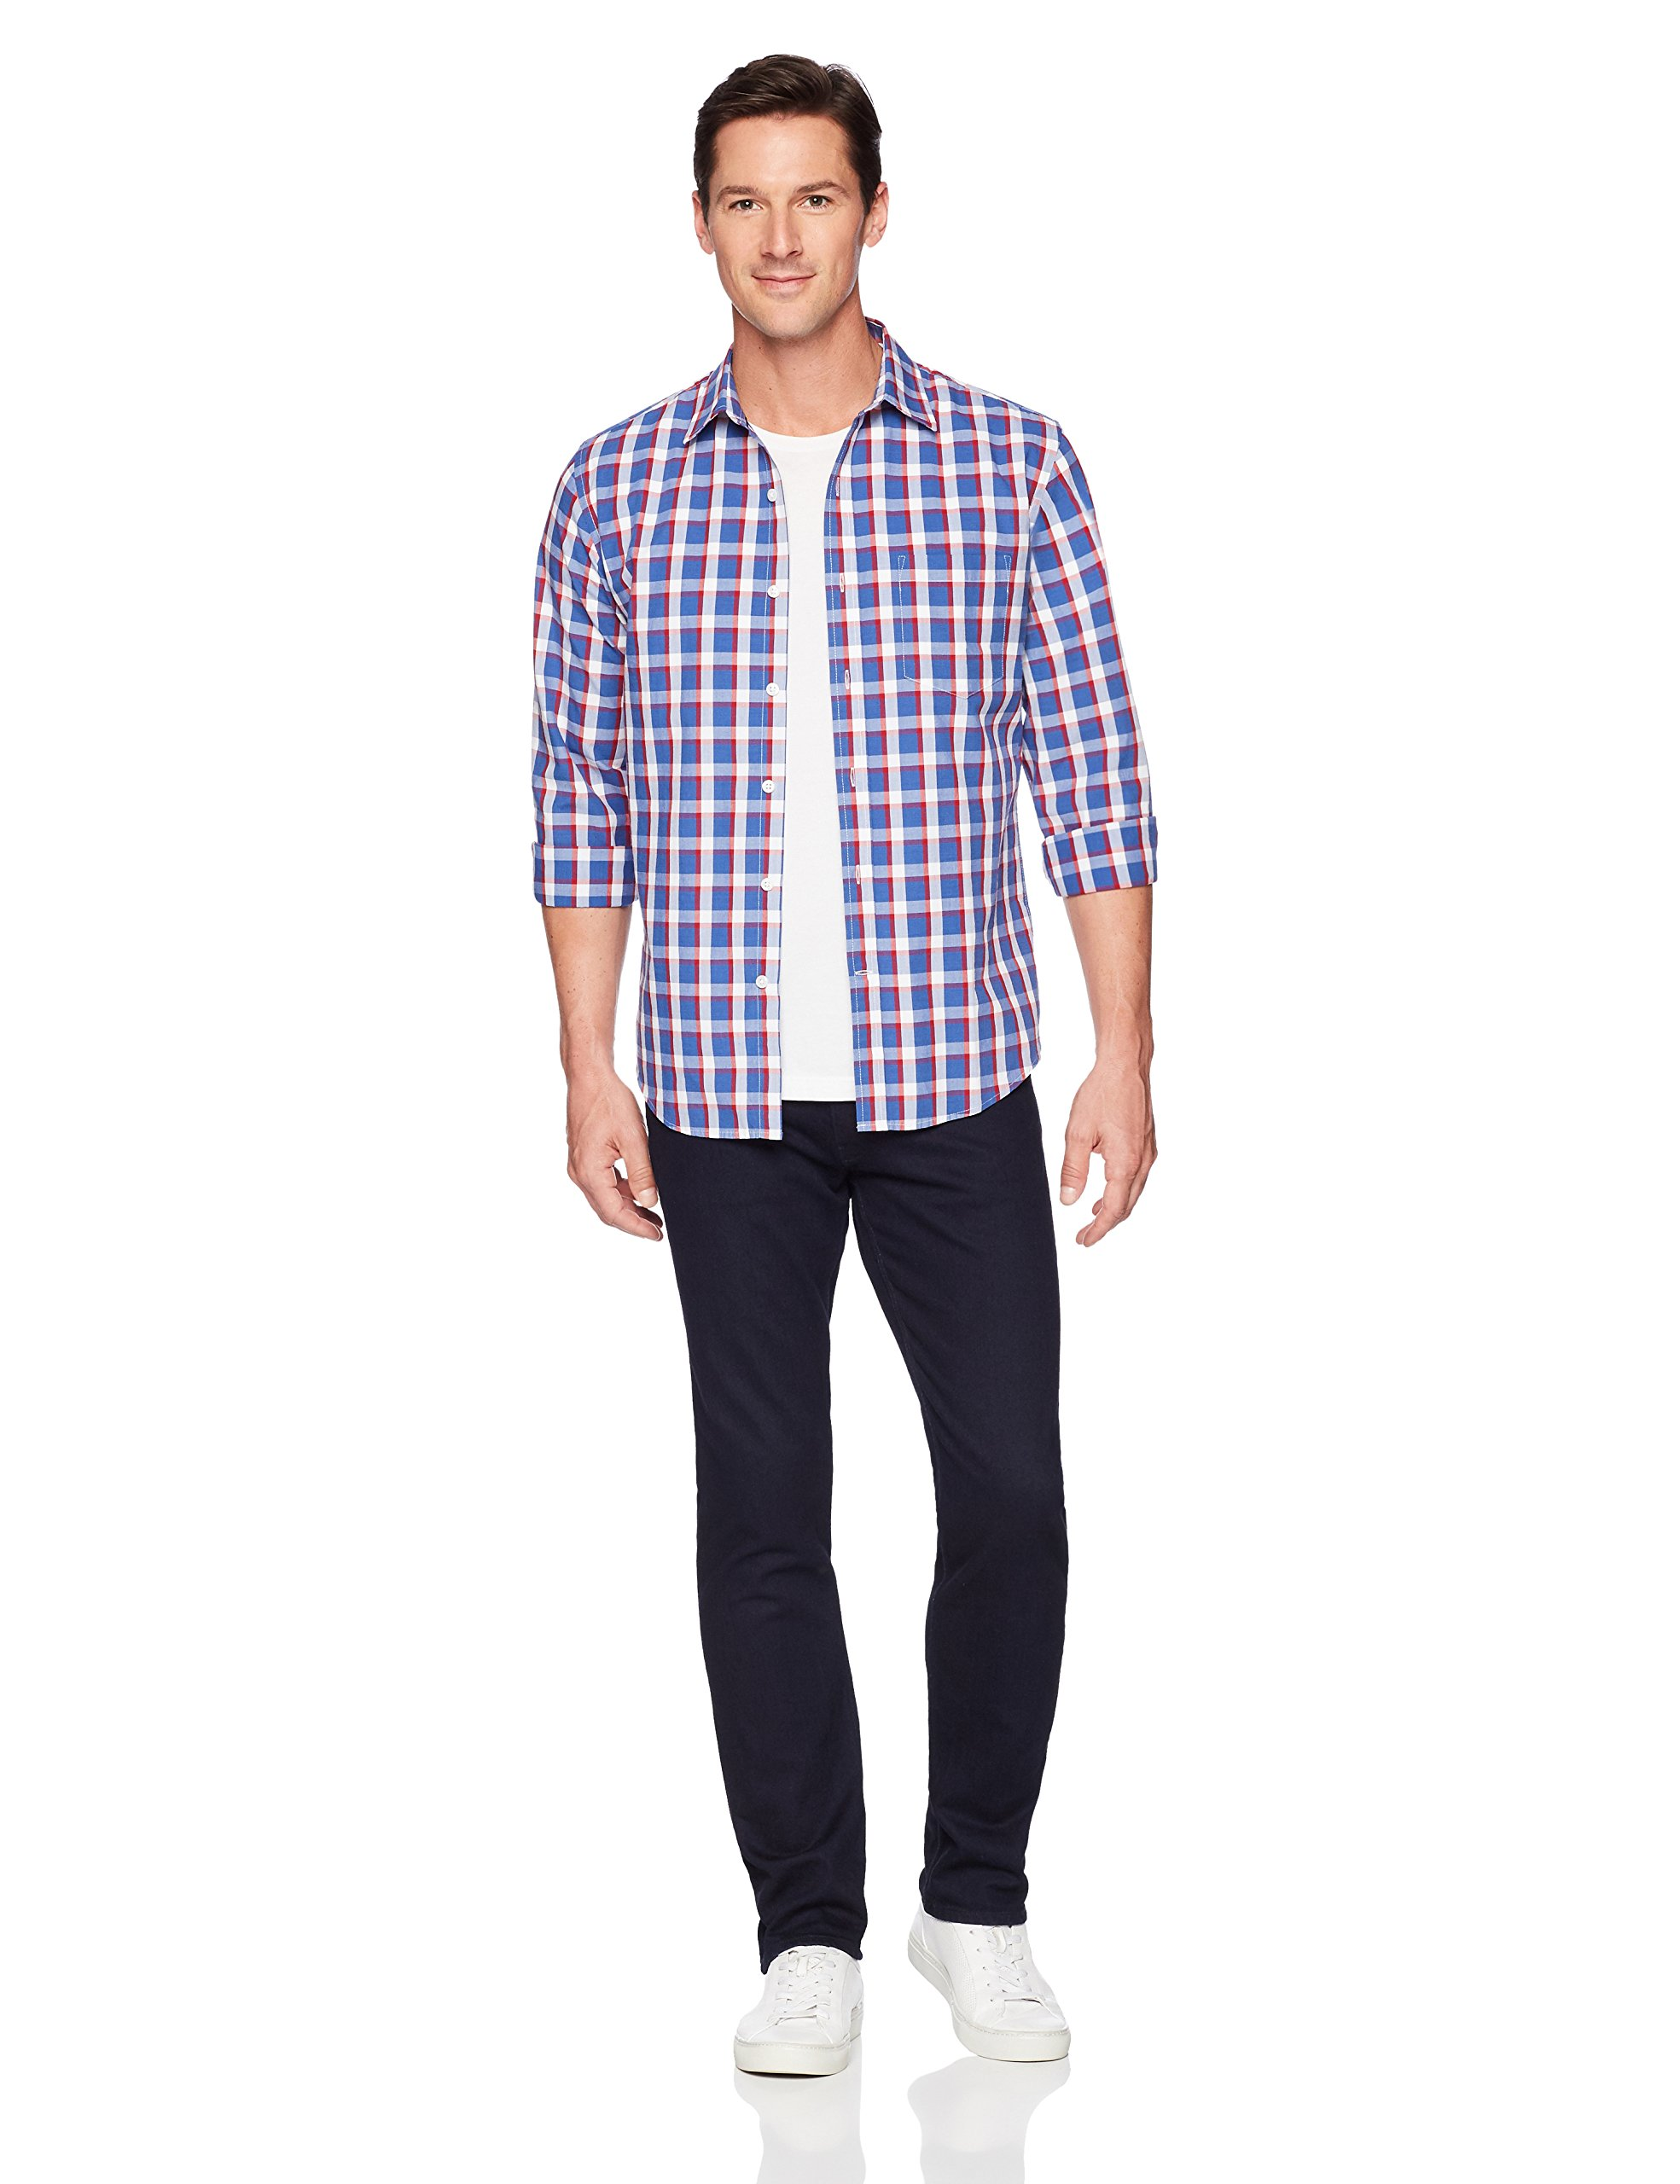 Amazon Essentials Men's Regular-Fit Long-Sleeve Plaid Shirt, blue/red plaid, Large by Amazon Essentials (Image #2)